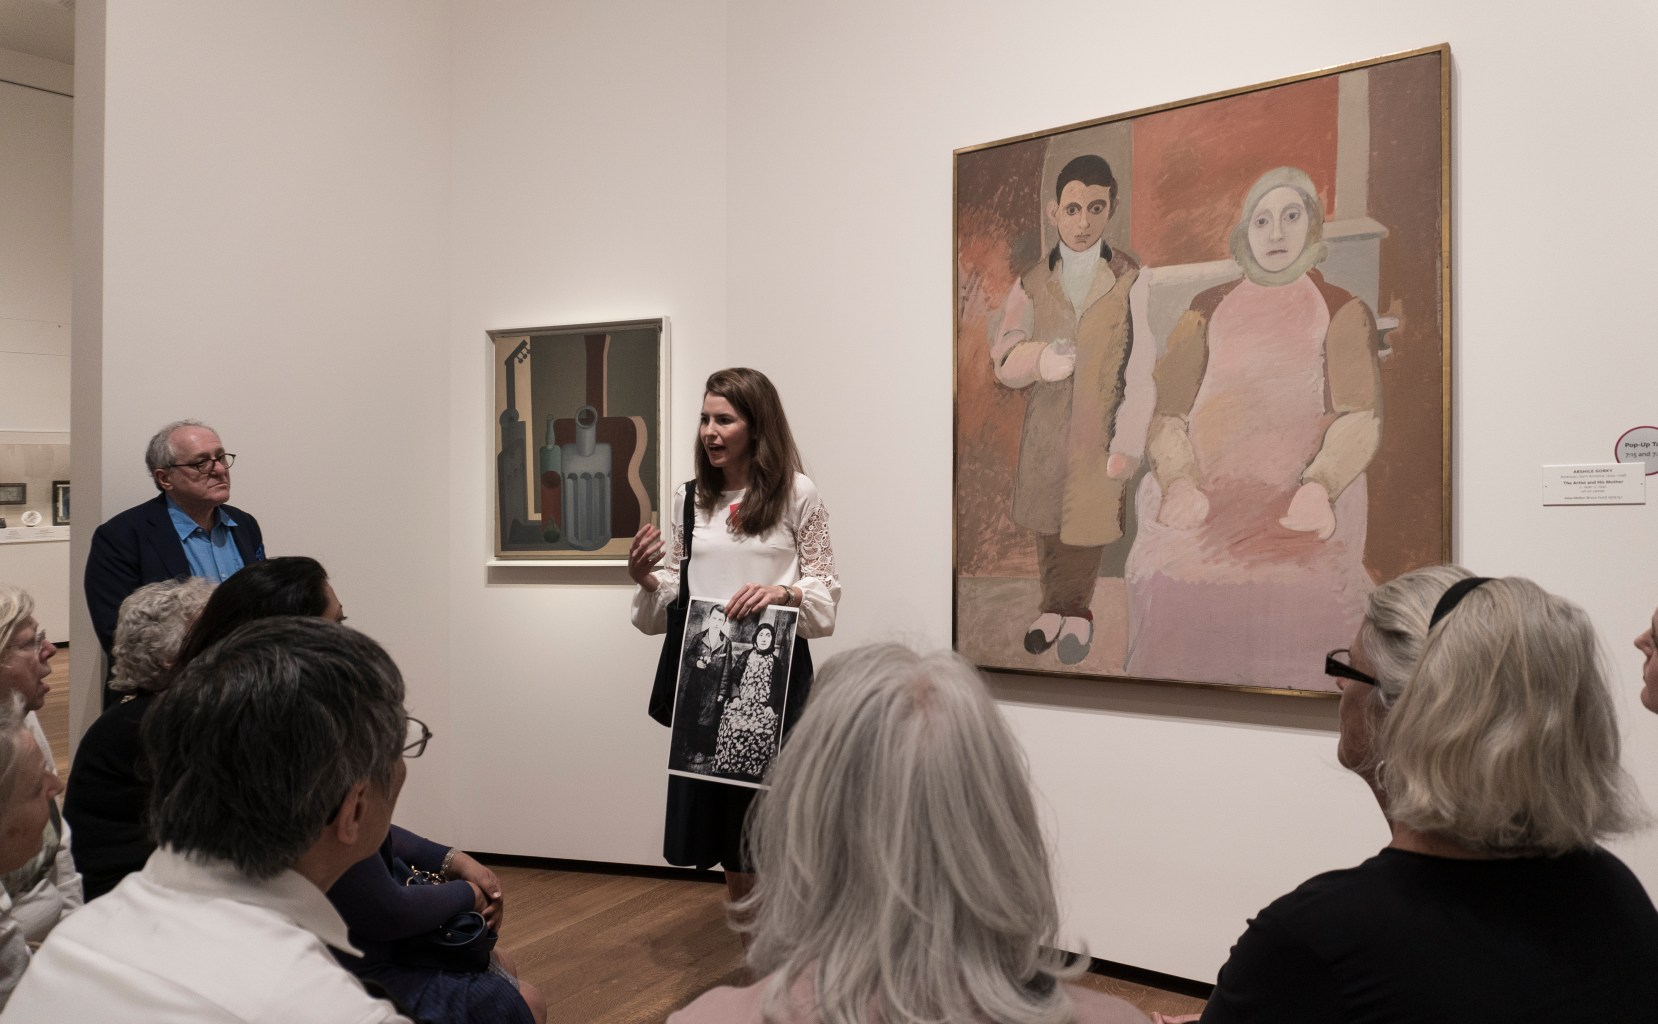 An educator stands in front of a painting addressing a seated group of participants. The painting behind her shows a standing child and a seated adult, and is rendered in flat blocks of earth-toned color. The educator holds up a print-out of a photograph of the subjects in real life.